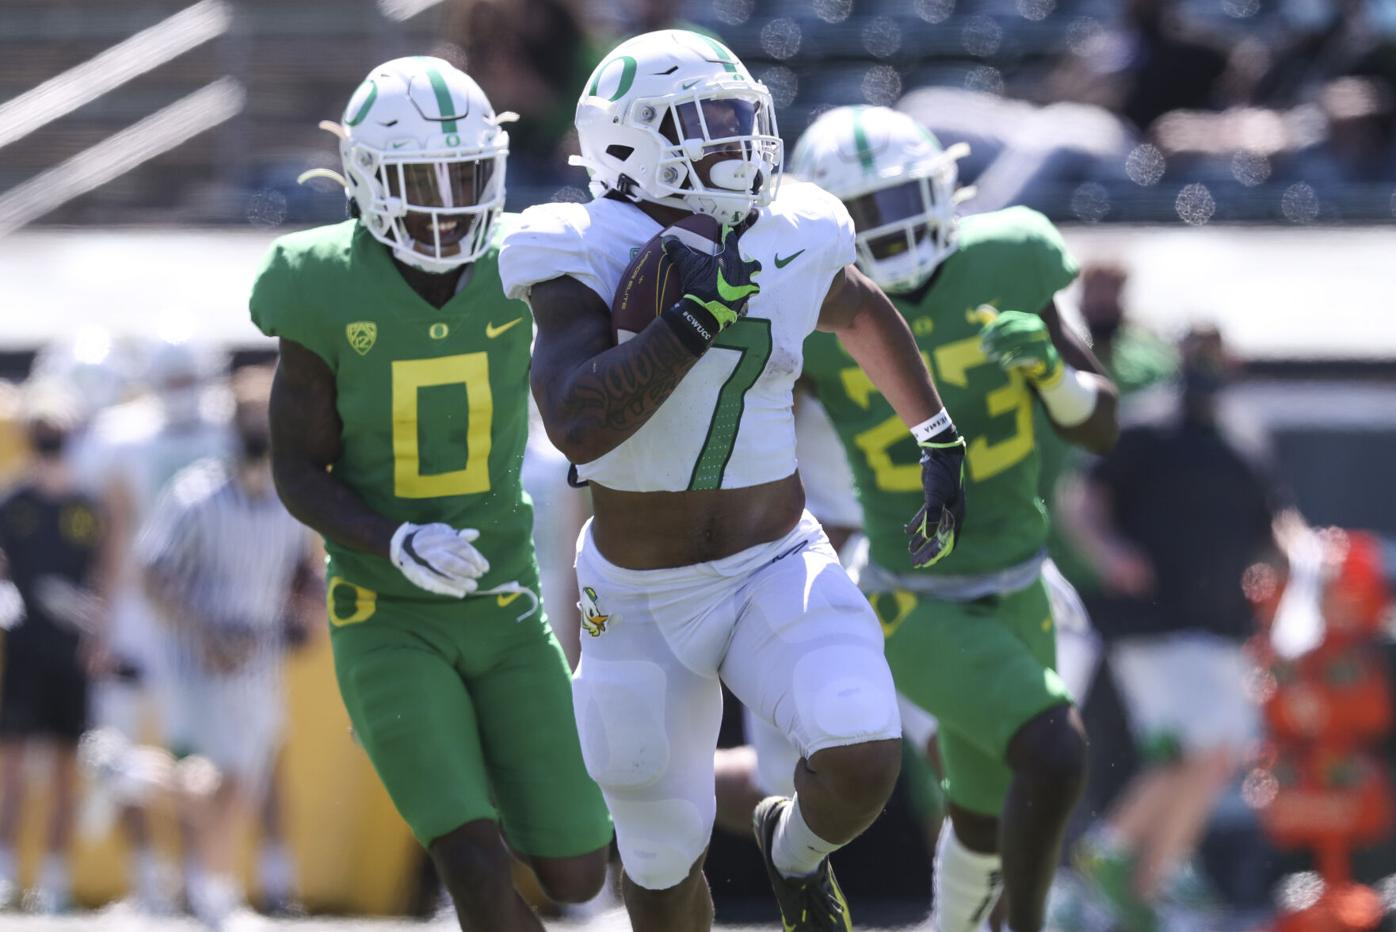 Fans reintroduced to Oregon football during week three of spring practices